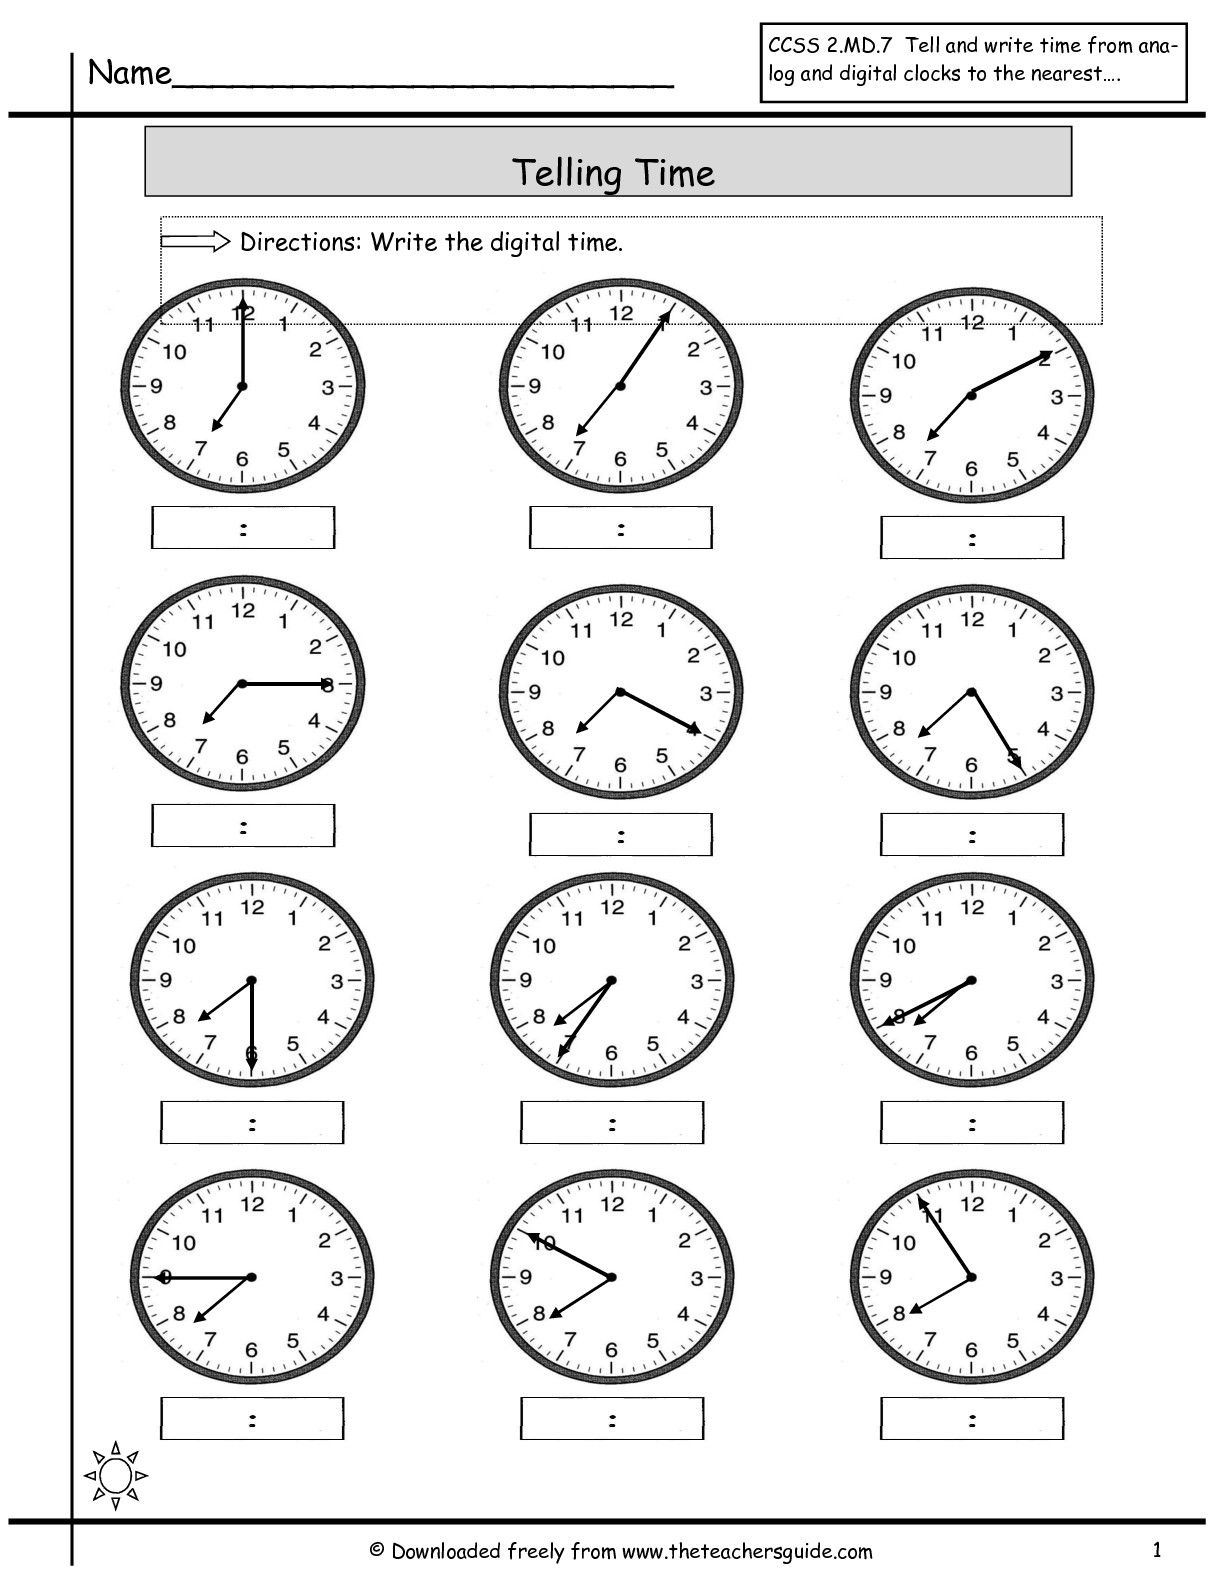 hight resolution of Telling Time Worksheets from The Teacher's Guide   Time worksheets